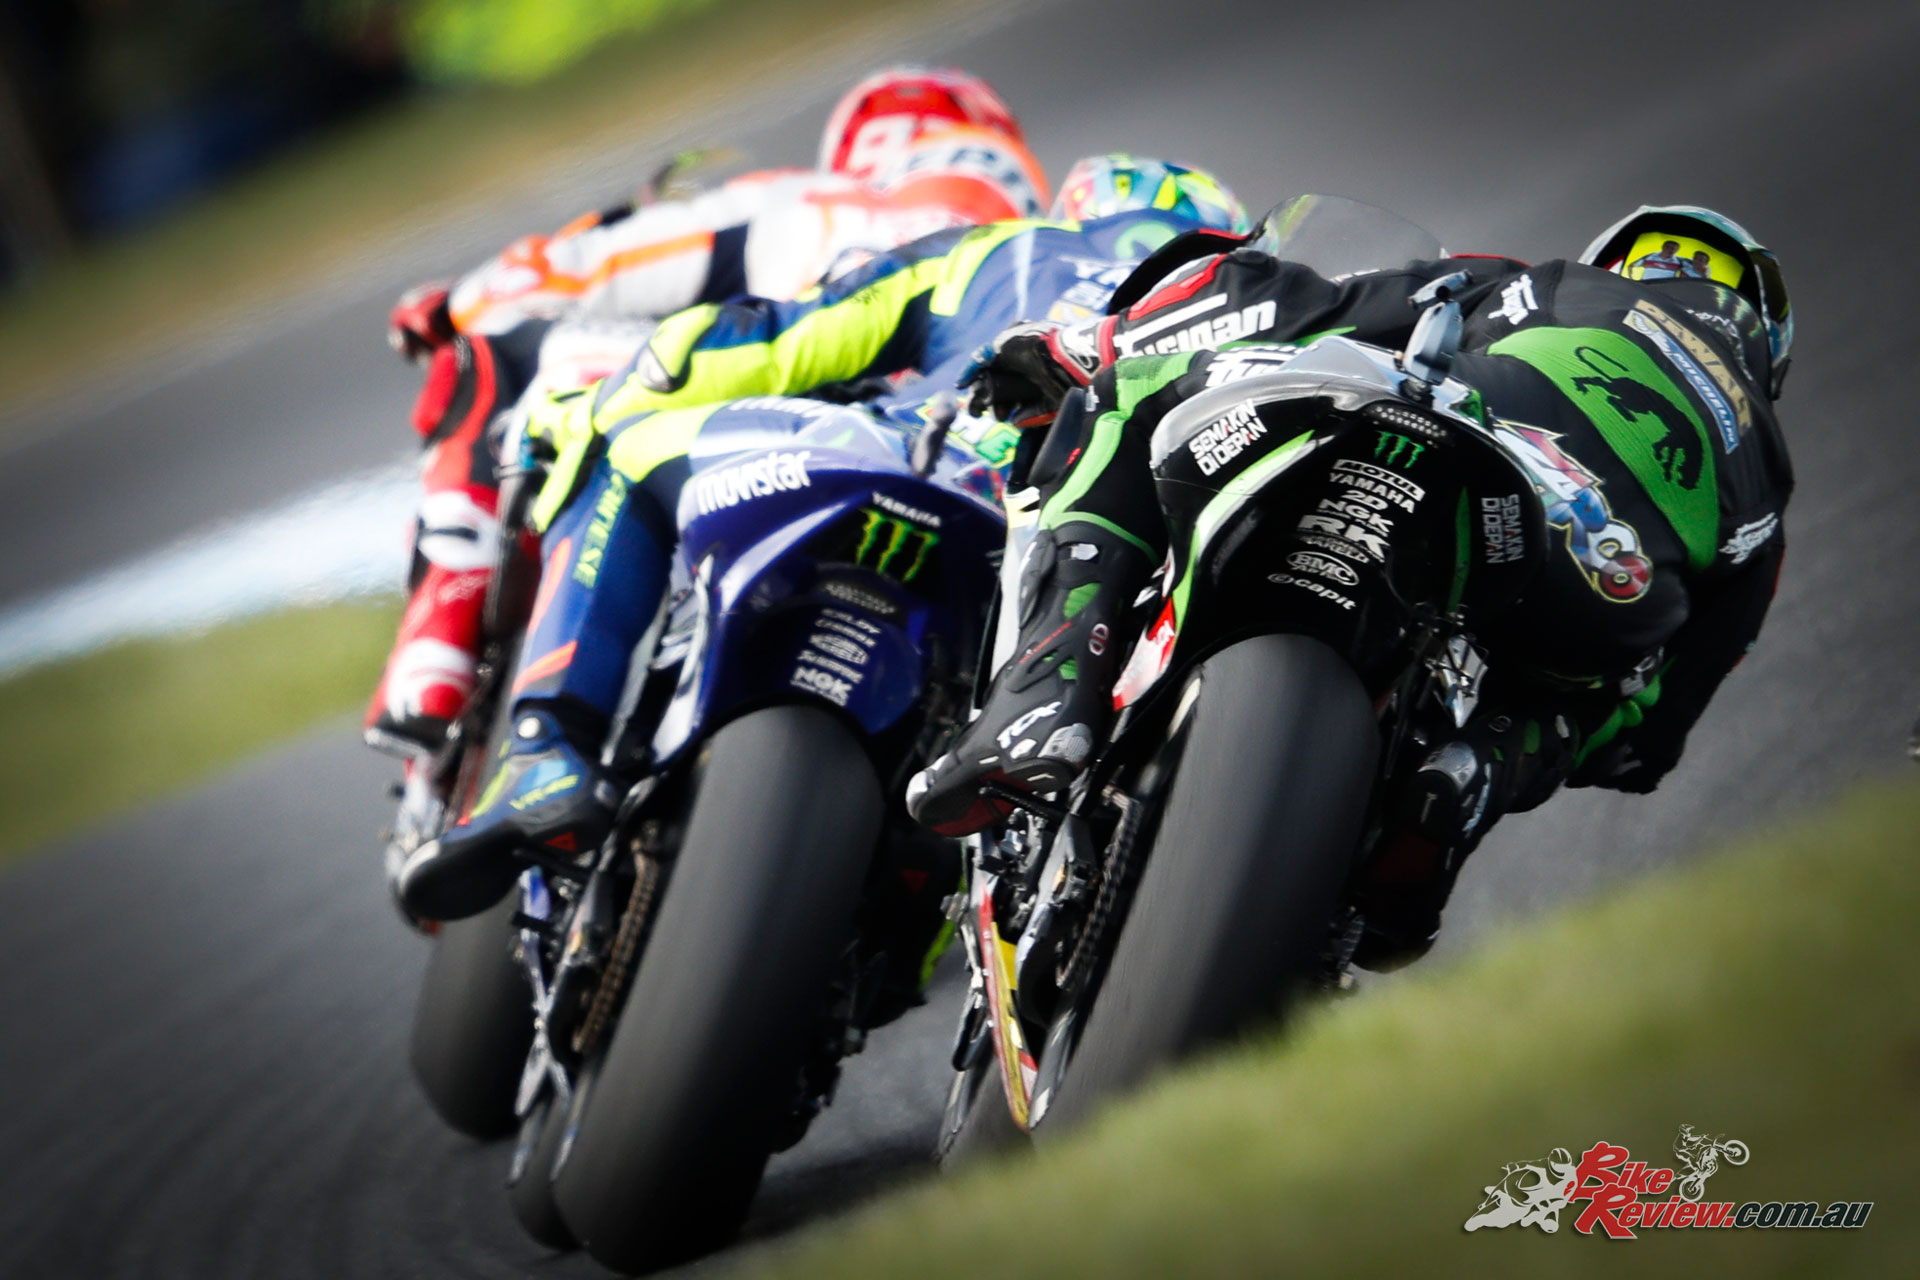 Johann Zarco ended up fourth, as first independent